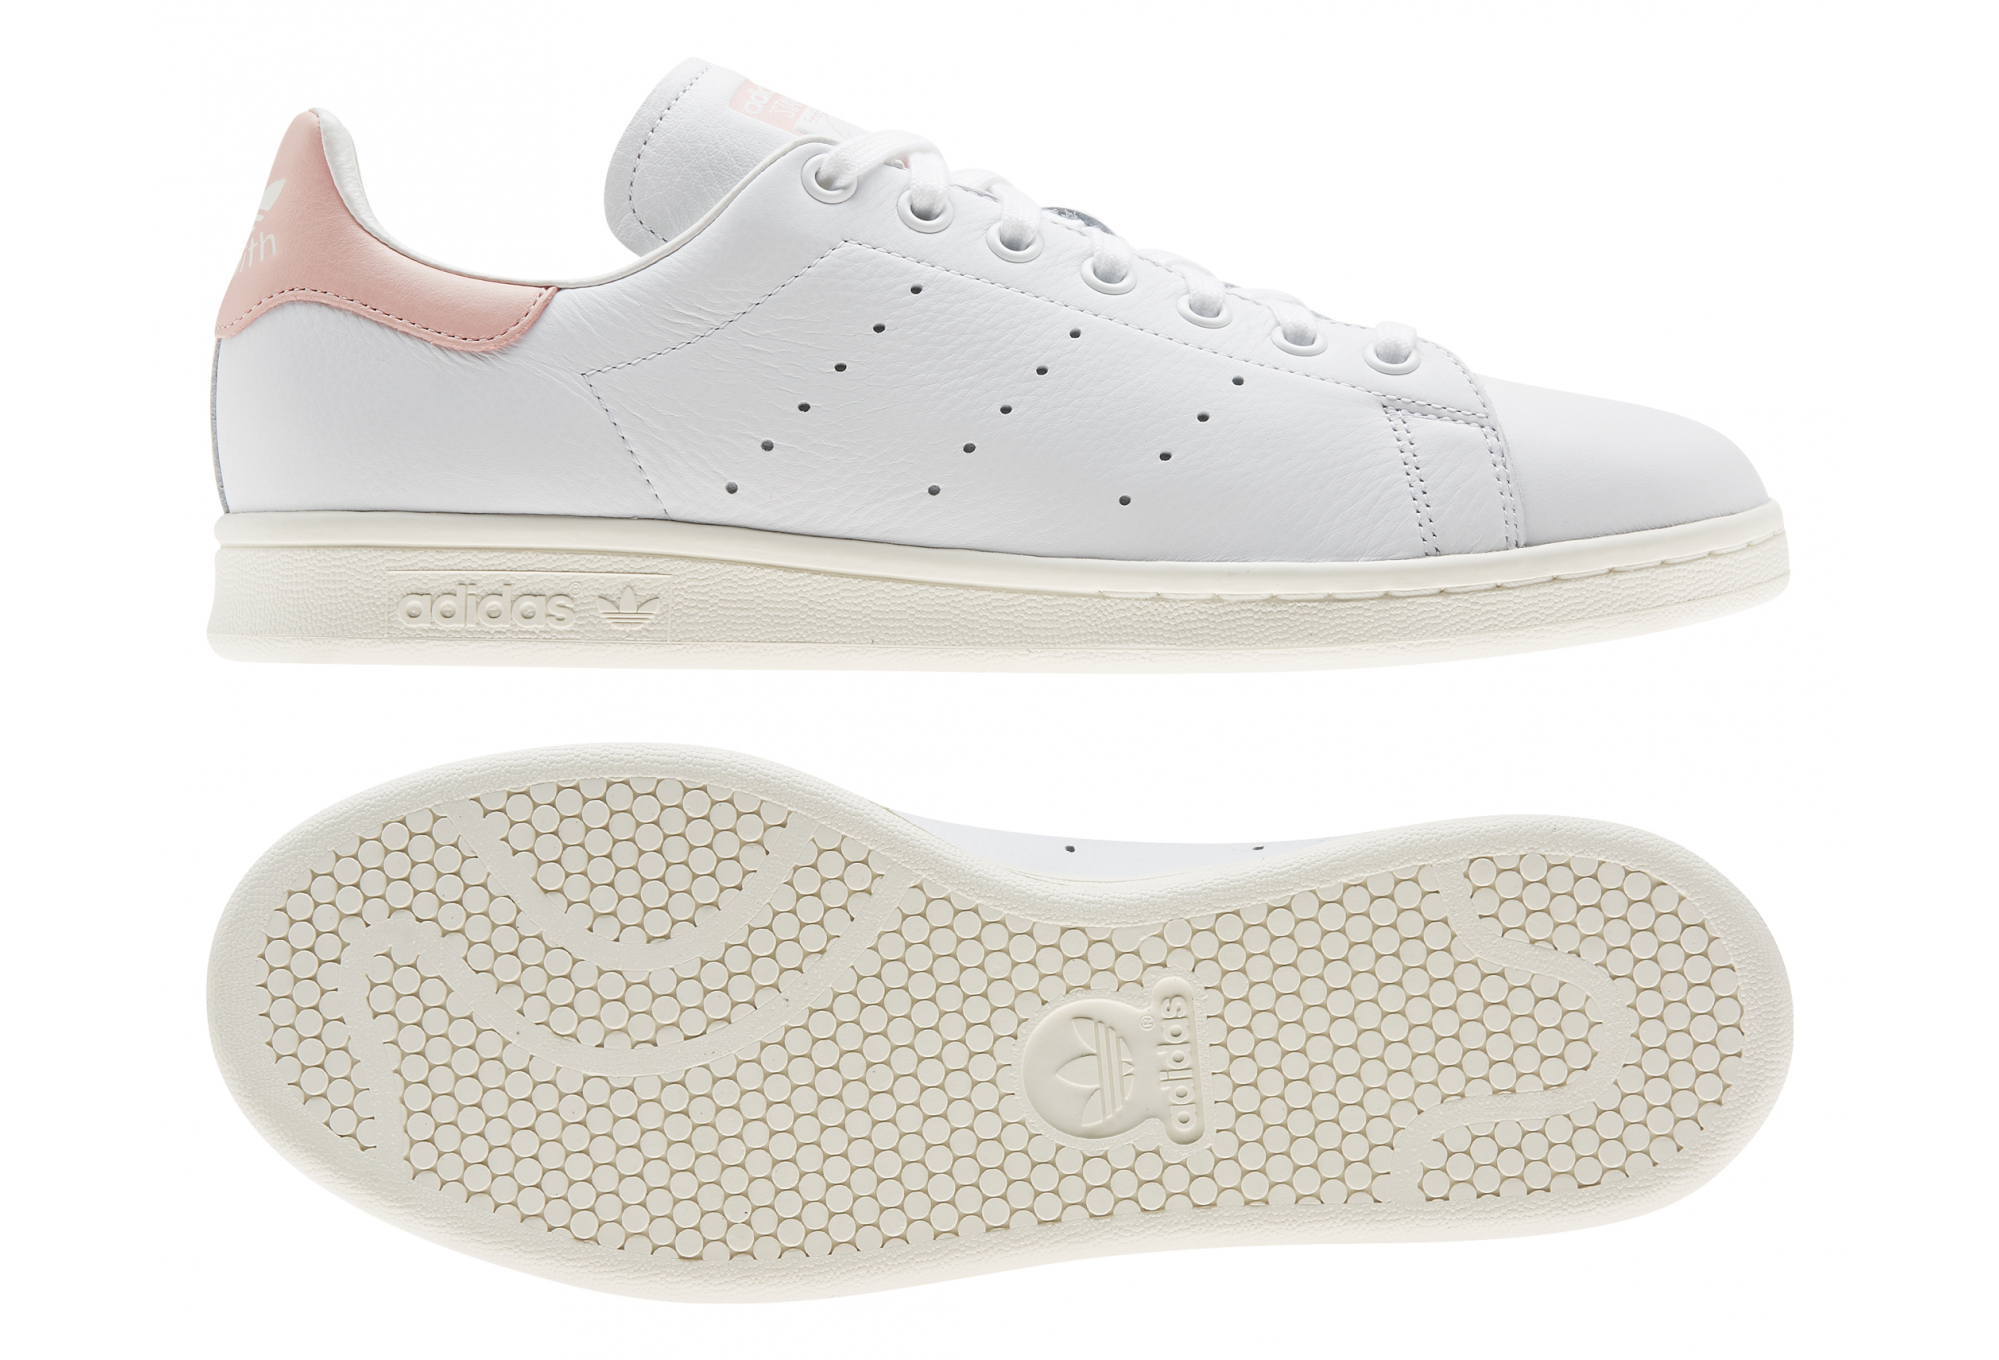 San Francisco c4b8b 9425b Chaussures adidas Stan Smith